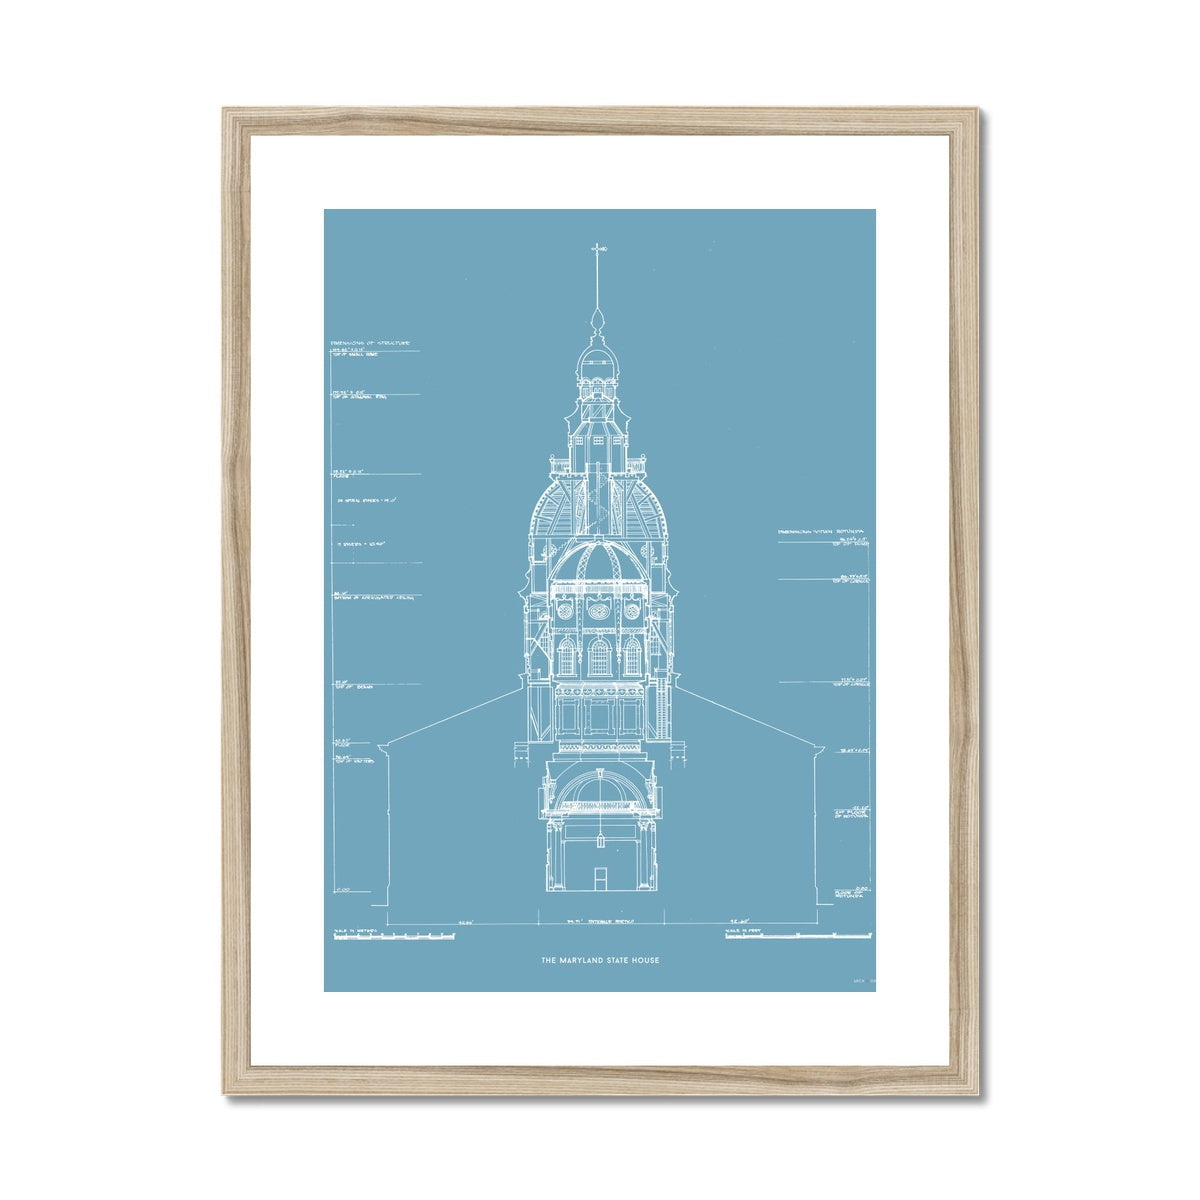 The Maryland State House - Northwest Elevation Cross Section - Blue -  Framed & Mounted Print